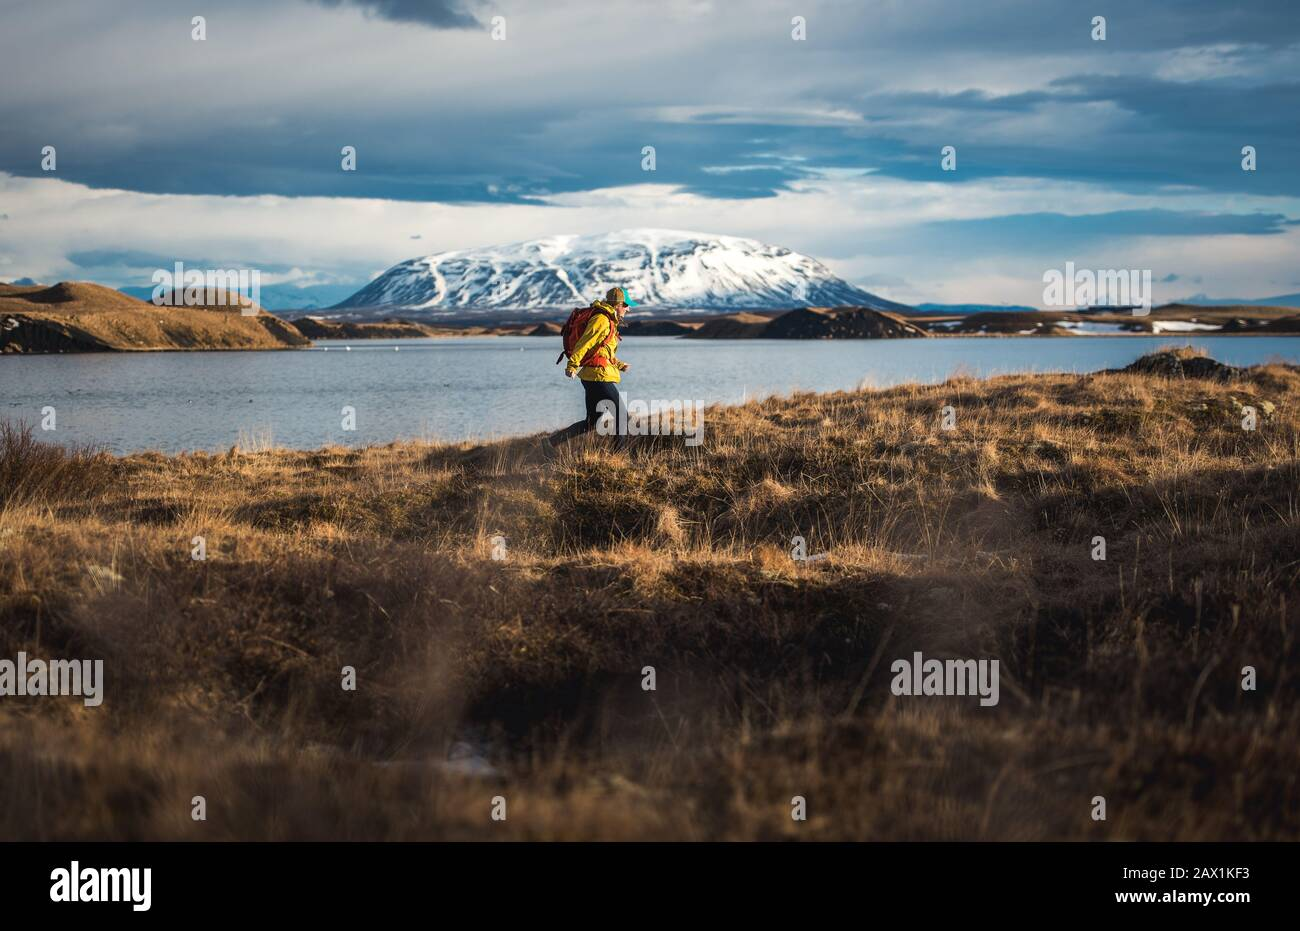 Woman walking through field next to lake with mountains in distance Stock Photo